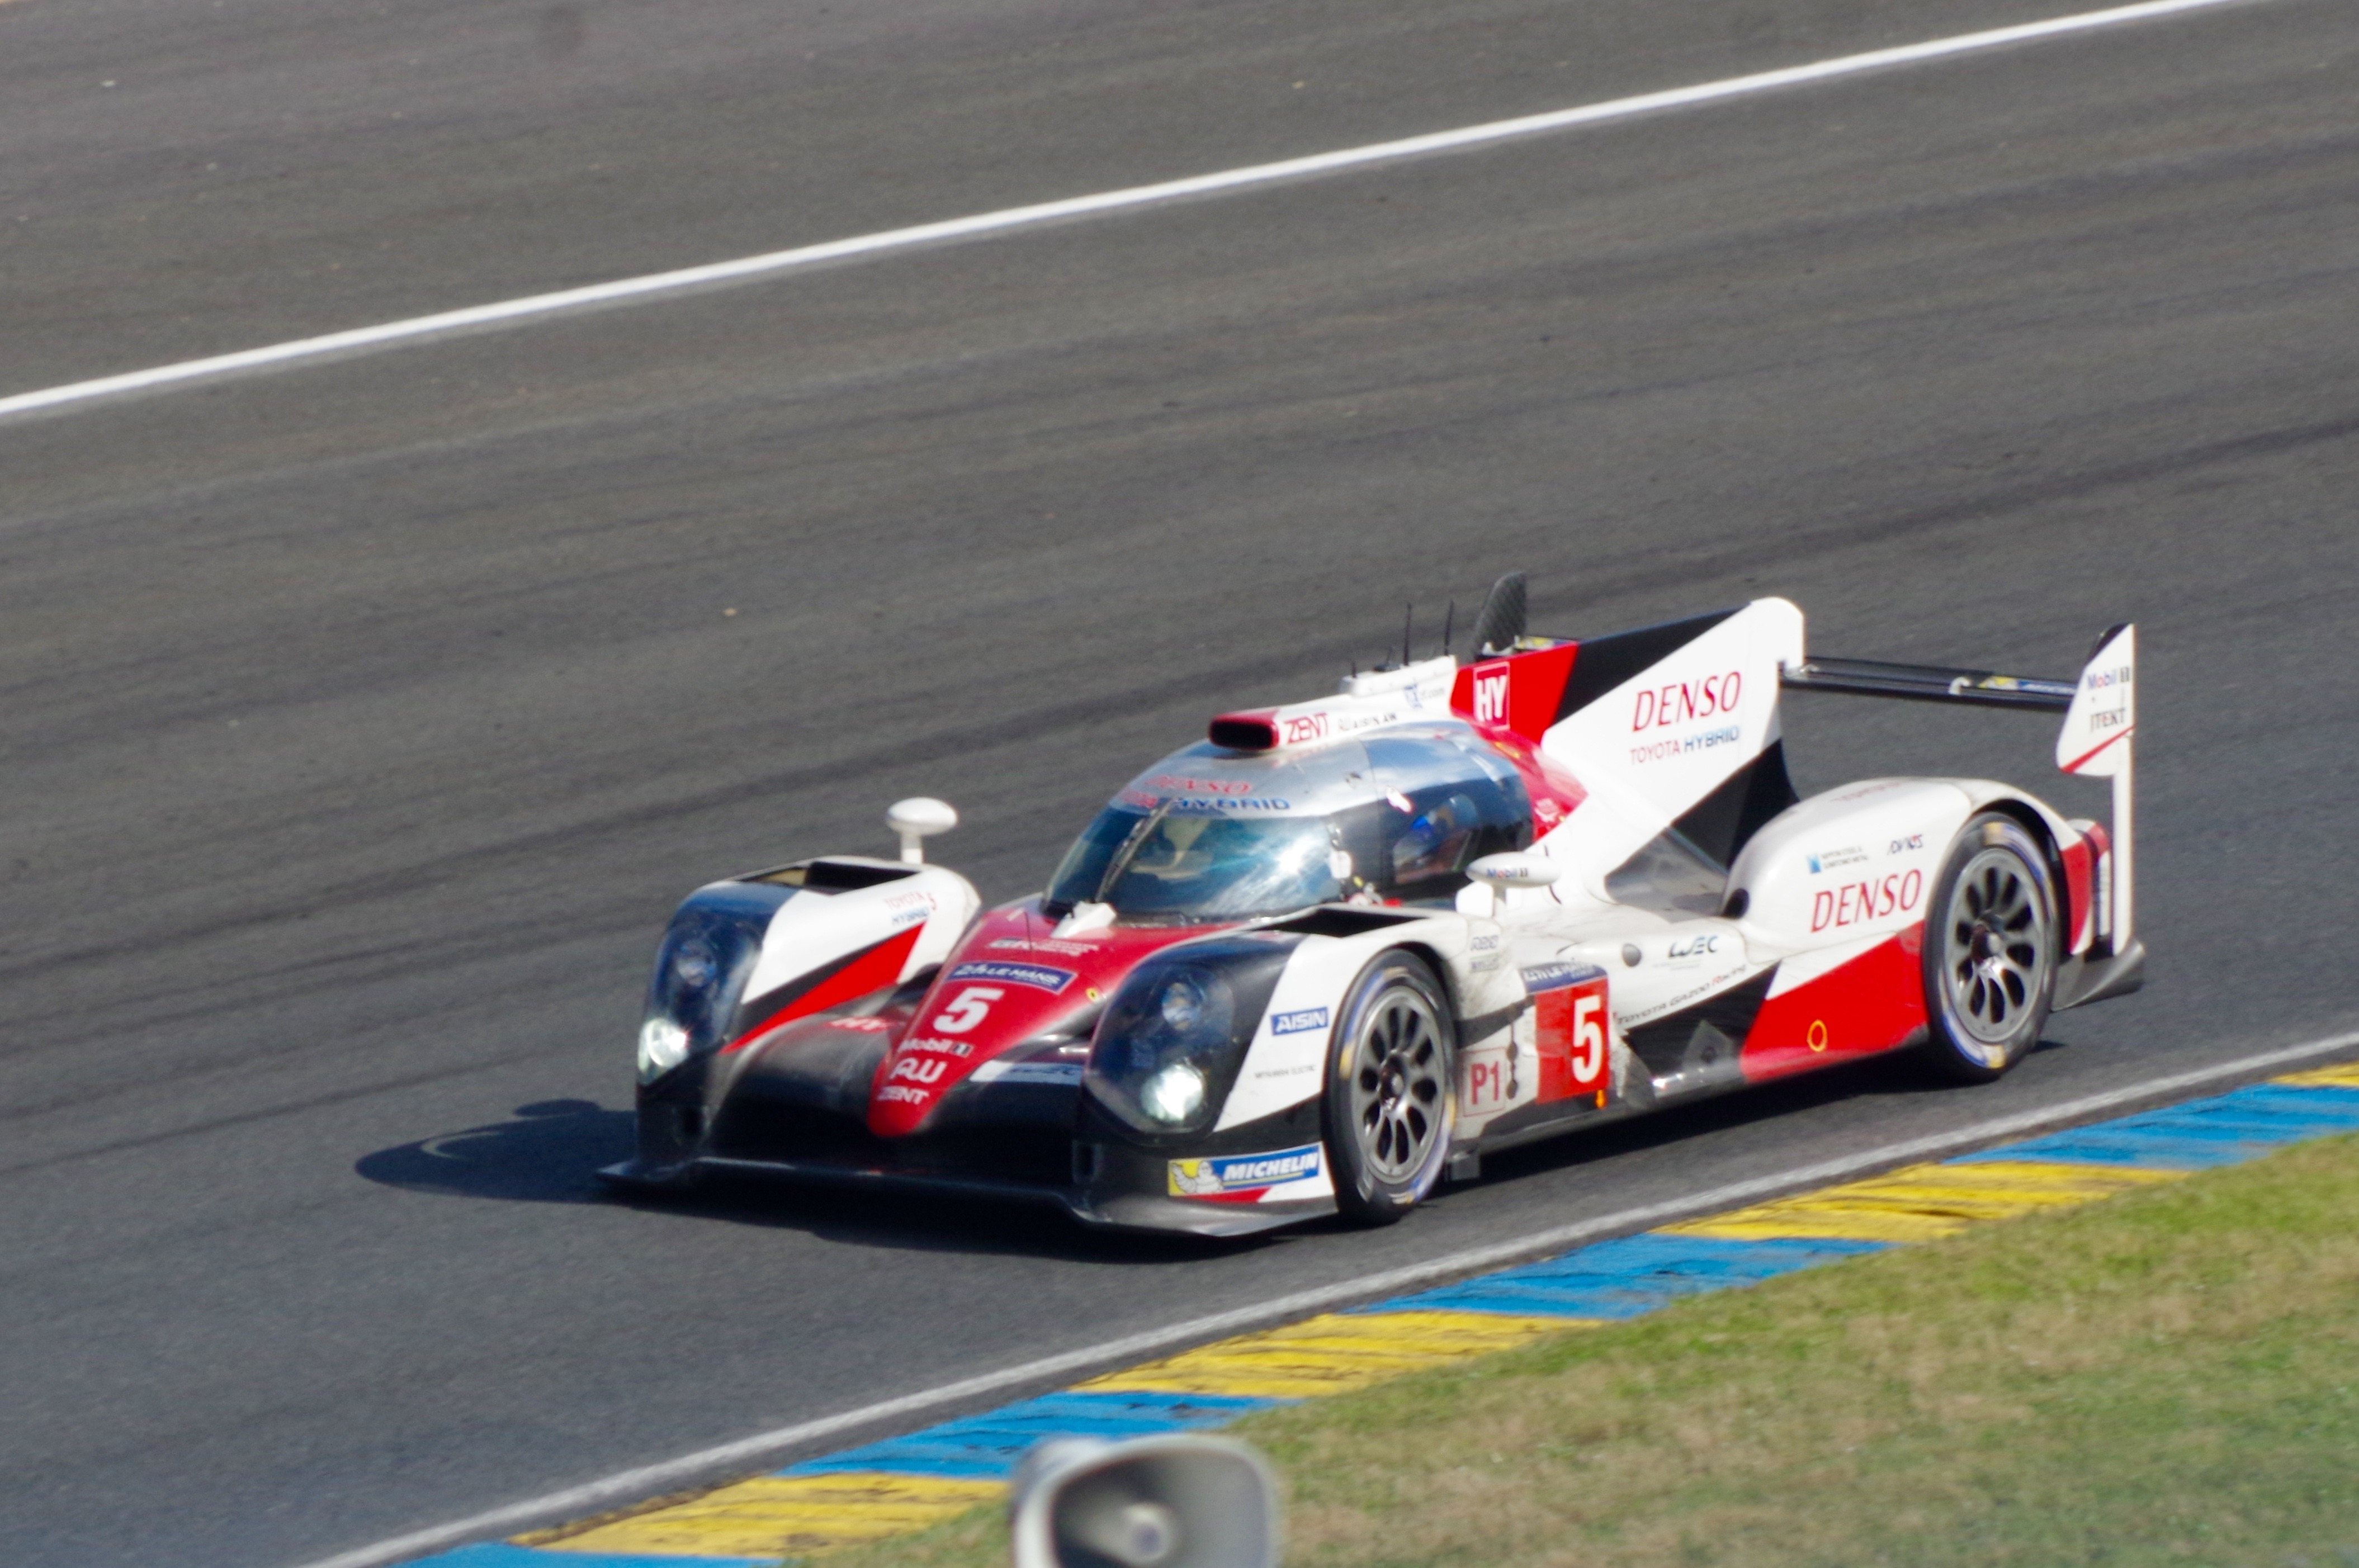 ficheiro no 5 toyota ts050 hybrid 2016 24 hours of le mans 1 jpg wikip dia a. Black Bedroom Furniture Sets. Home Design Ideas